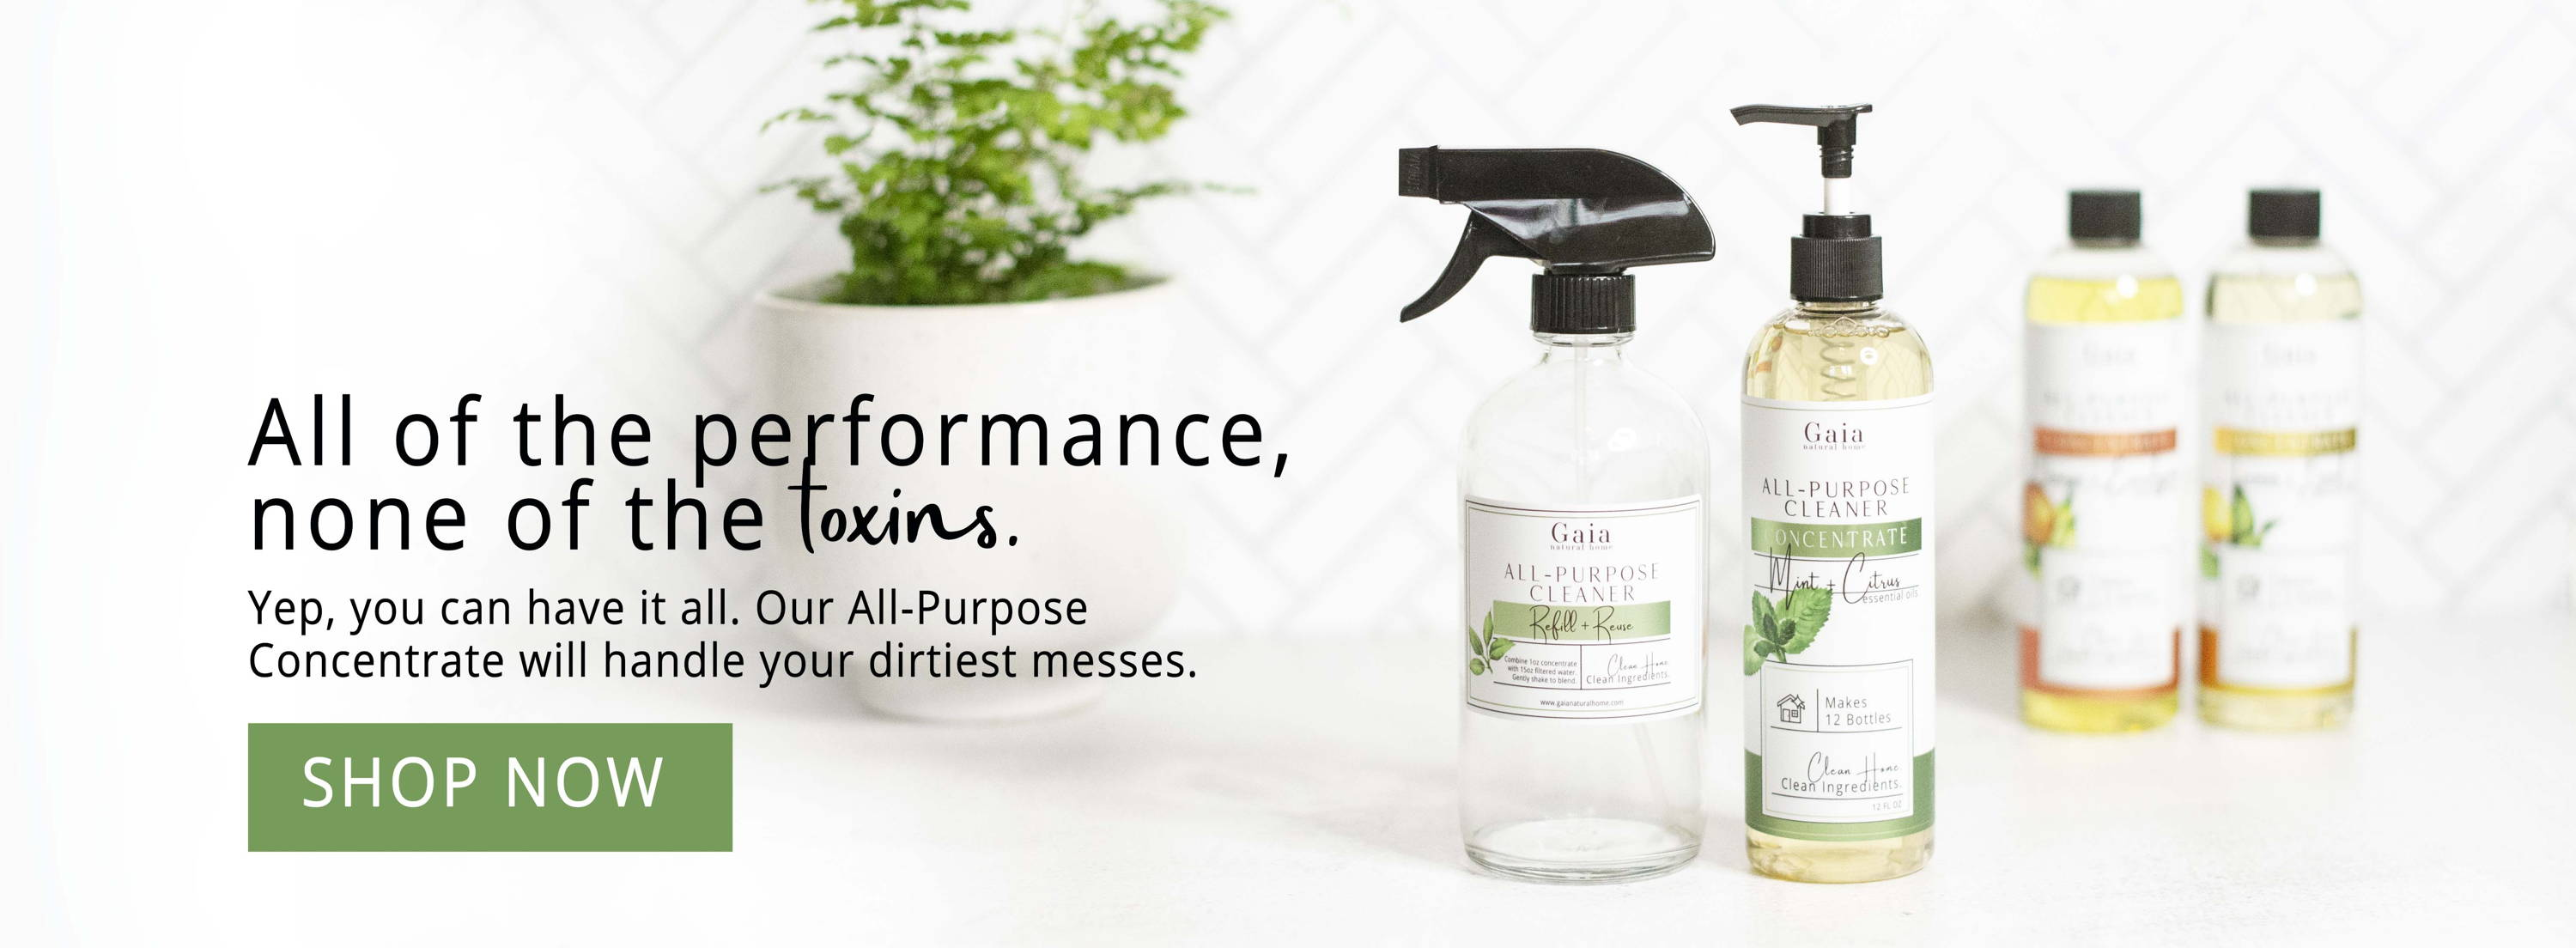 All-Purpose Cleaner Concentrate. Performance with none of the toxins.